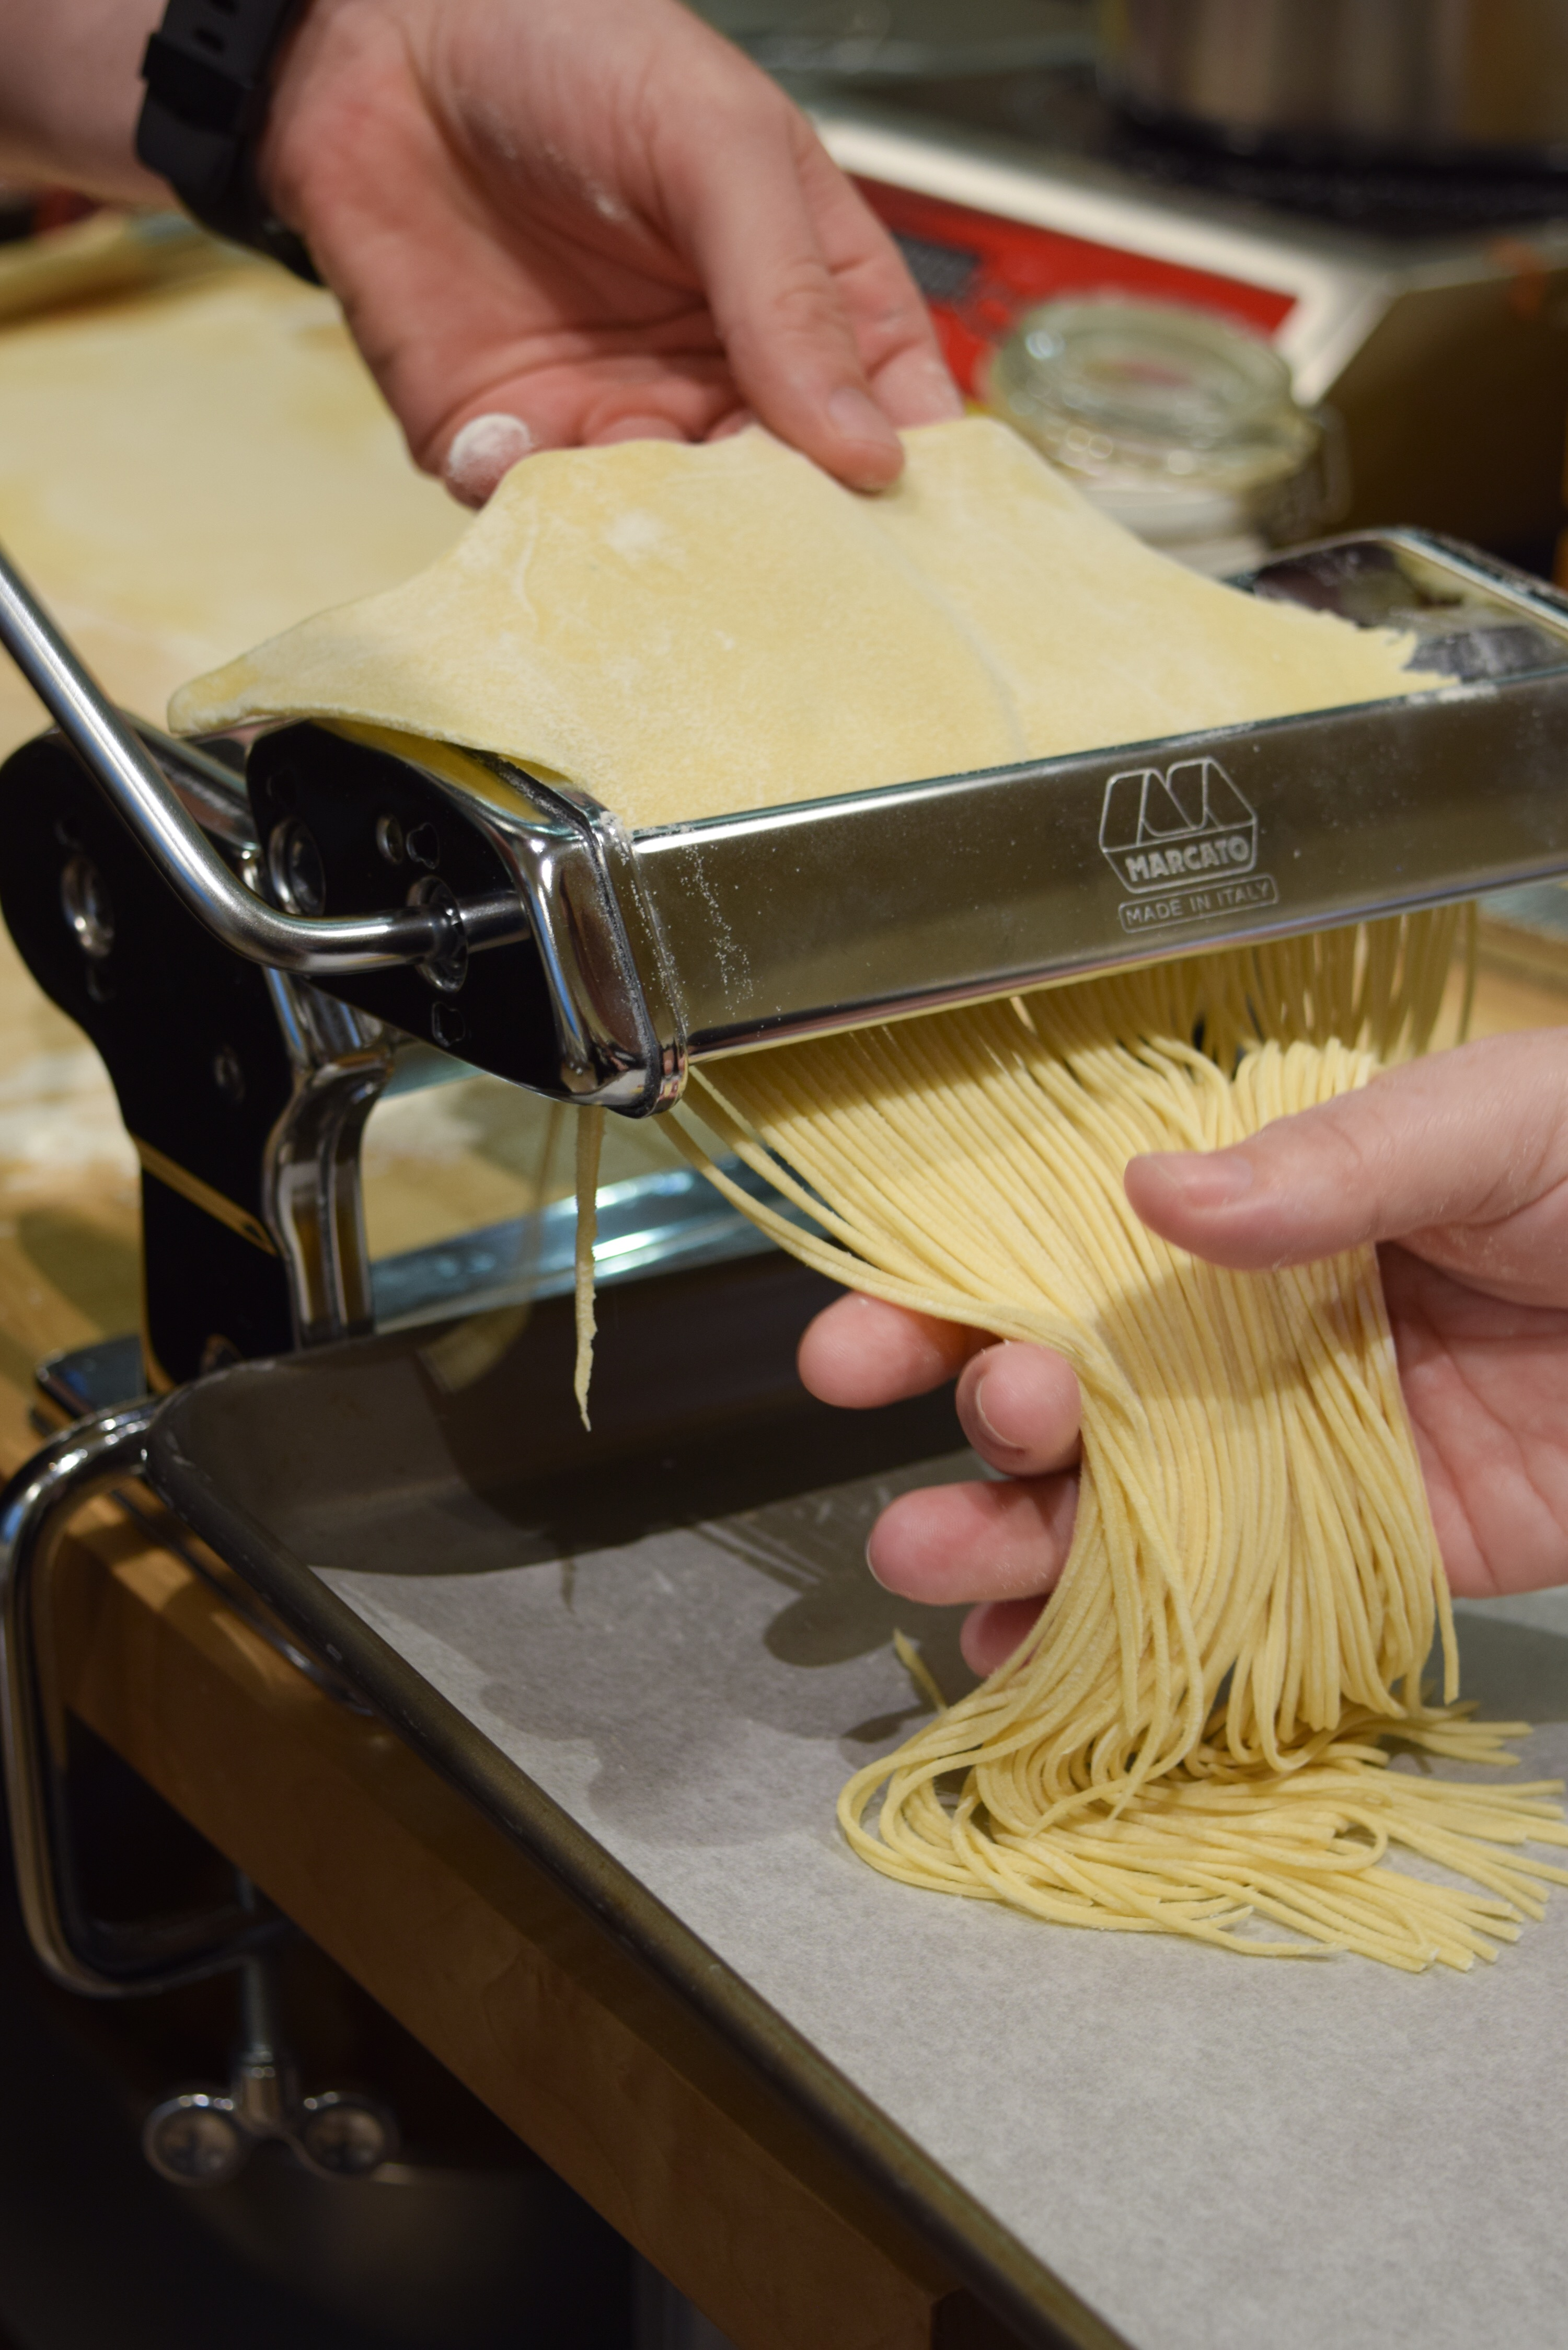 sur la table cooking class | pasta from scratch | date night ideas & Date Night: Sur La Table Pasta Making Class - A Simplified Life